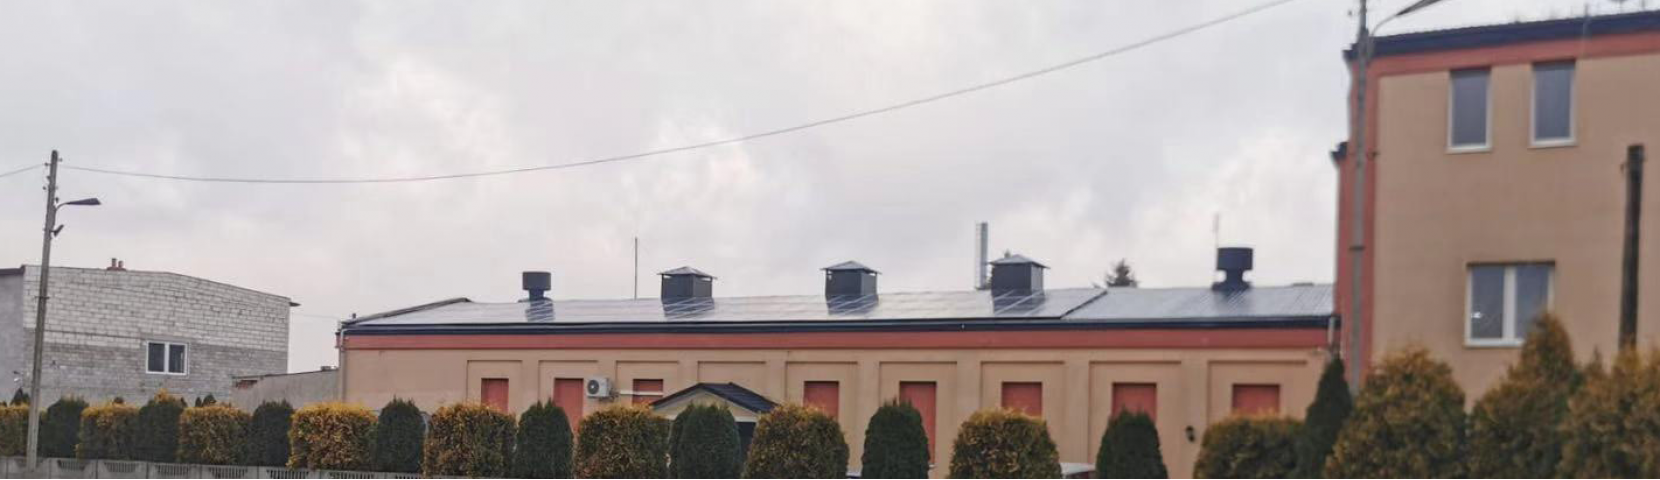 Residential 10kW roof-top PV project in Poland